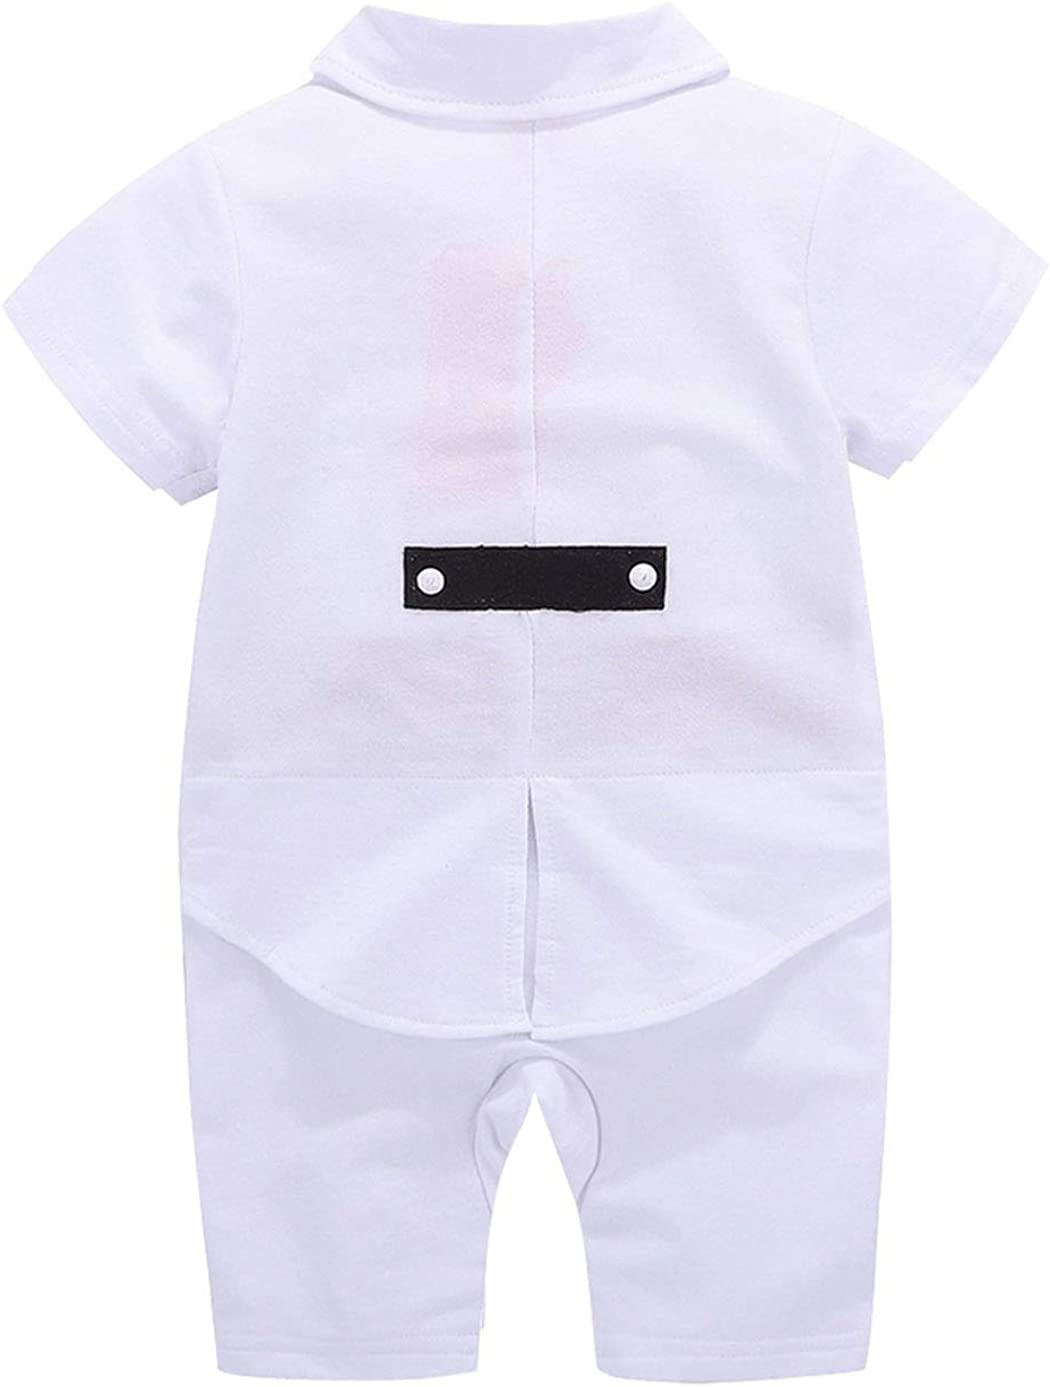 MetCuento Baby Boys Tuxedo Rompers Suit Short Sleeve Gentleman Bowtie Wedding Birthday Outfits Clothes 3-24 Months